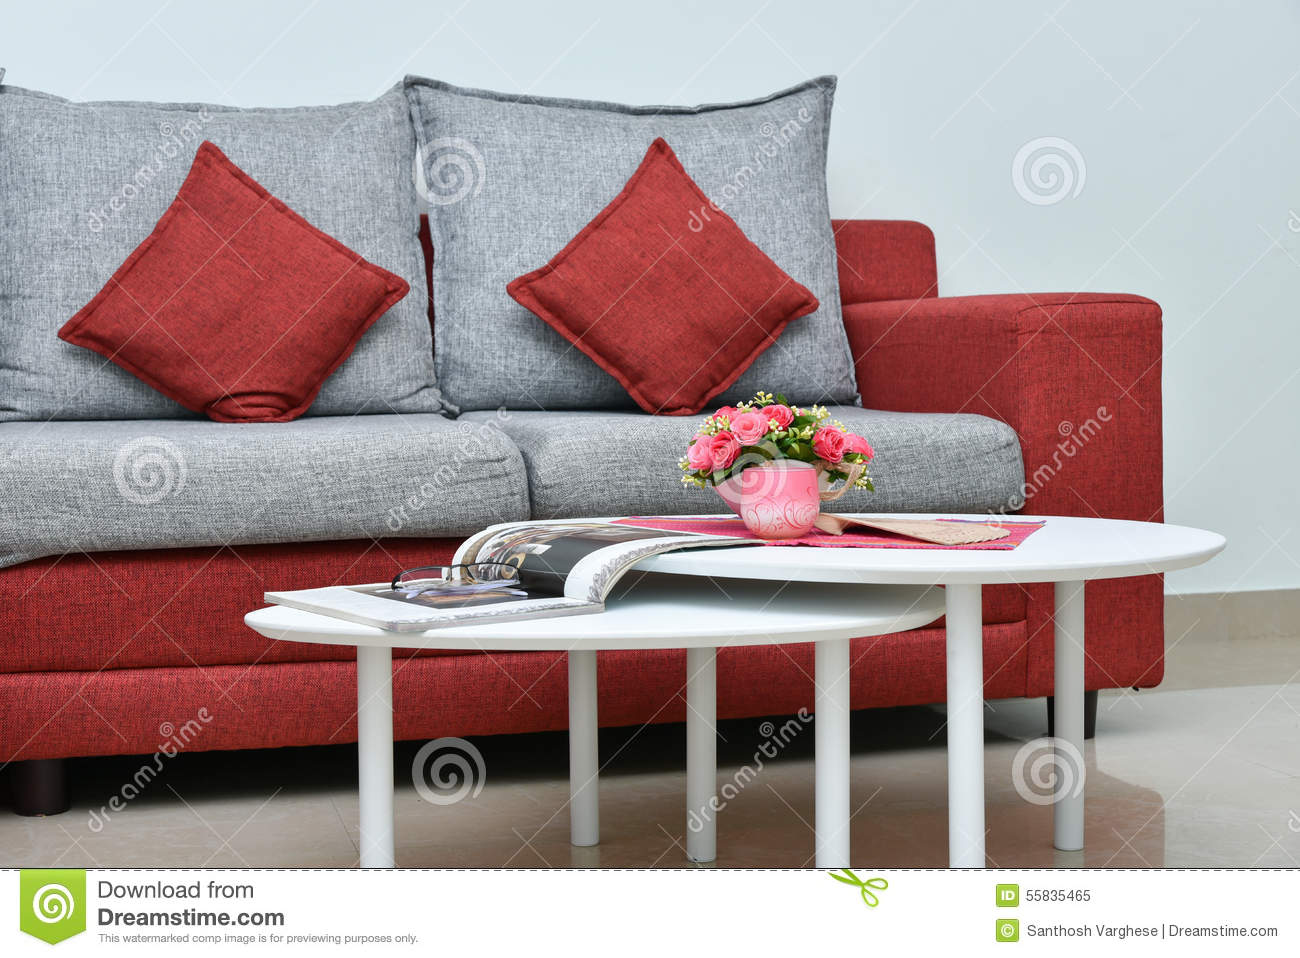 Modern Red And Grey Sofa In Living Room Interior Stock Image Image Of Breakfast Dessert 55835465